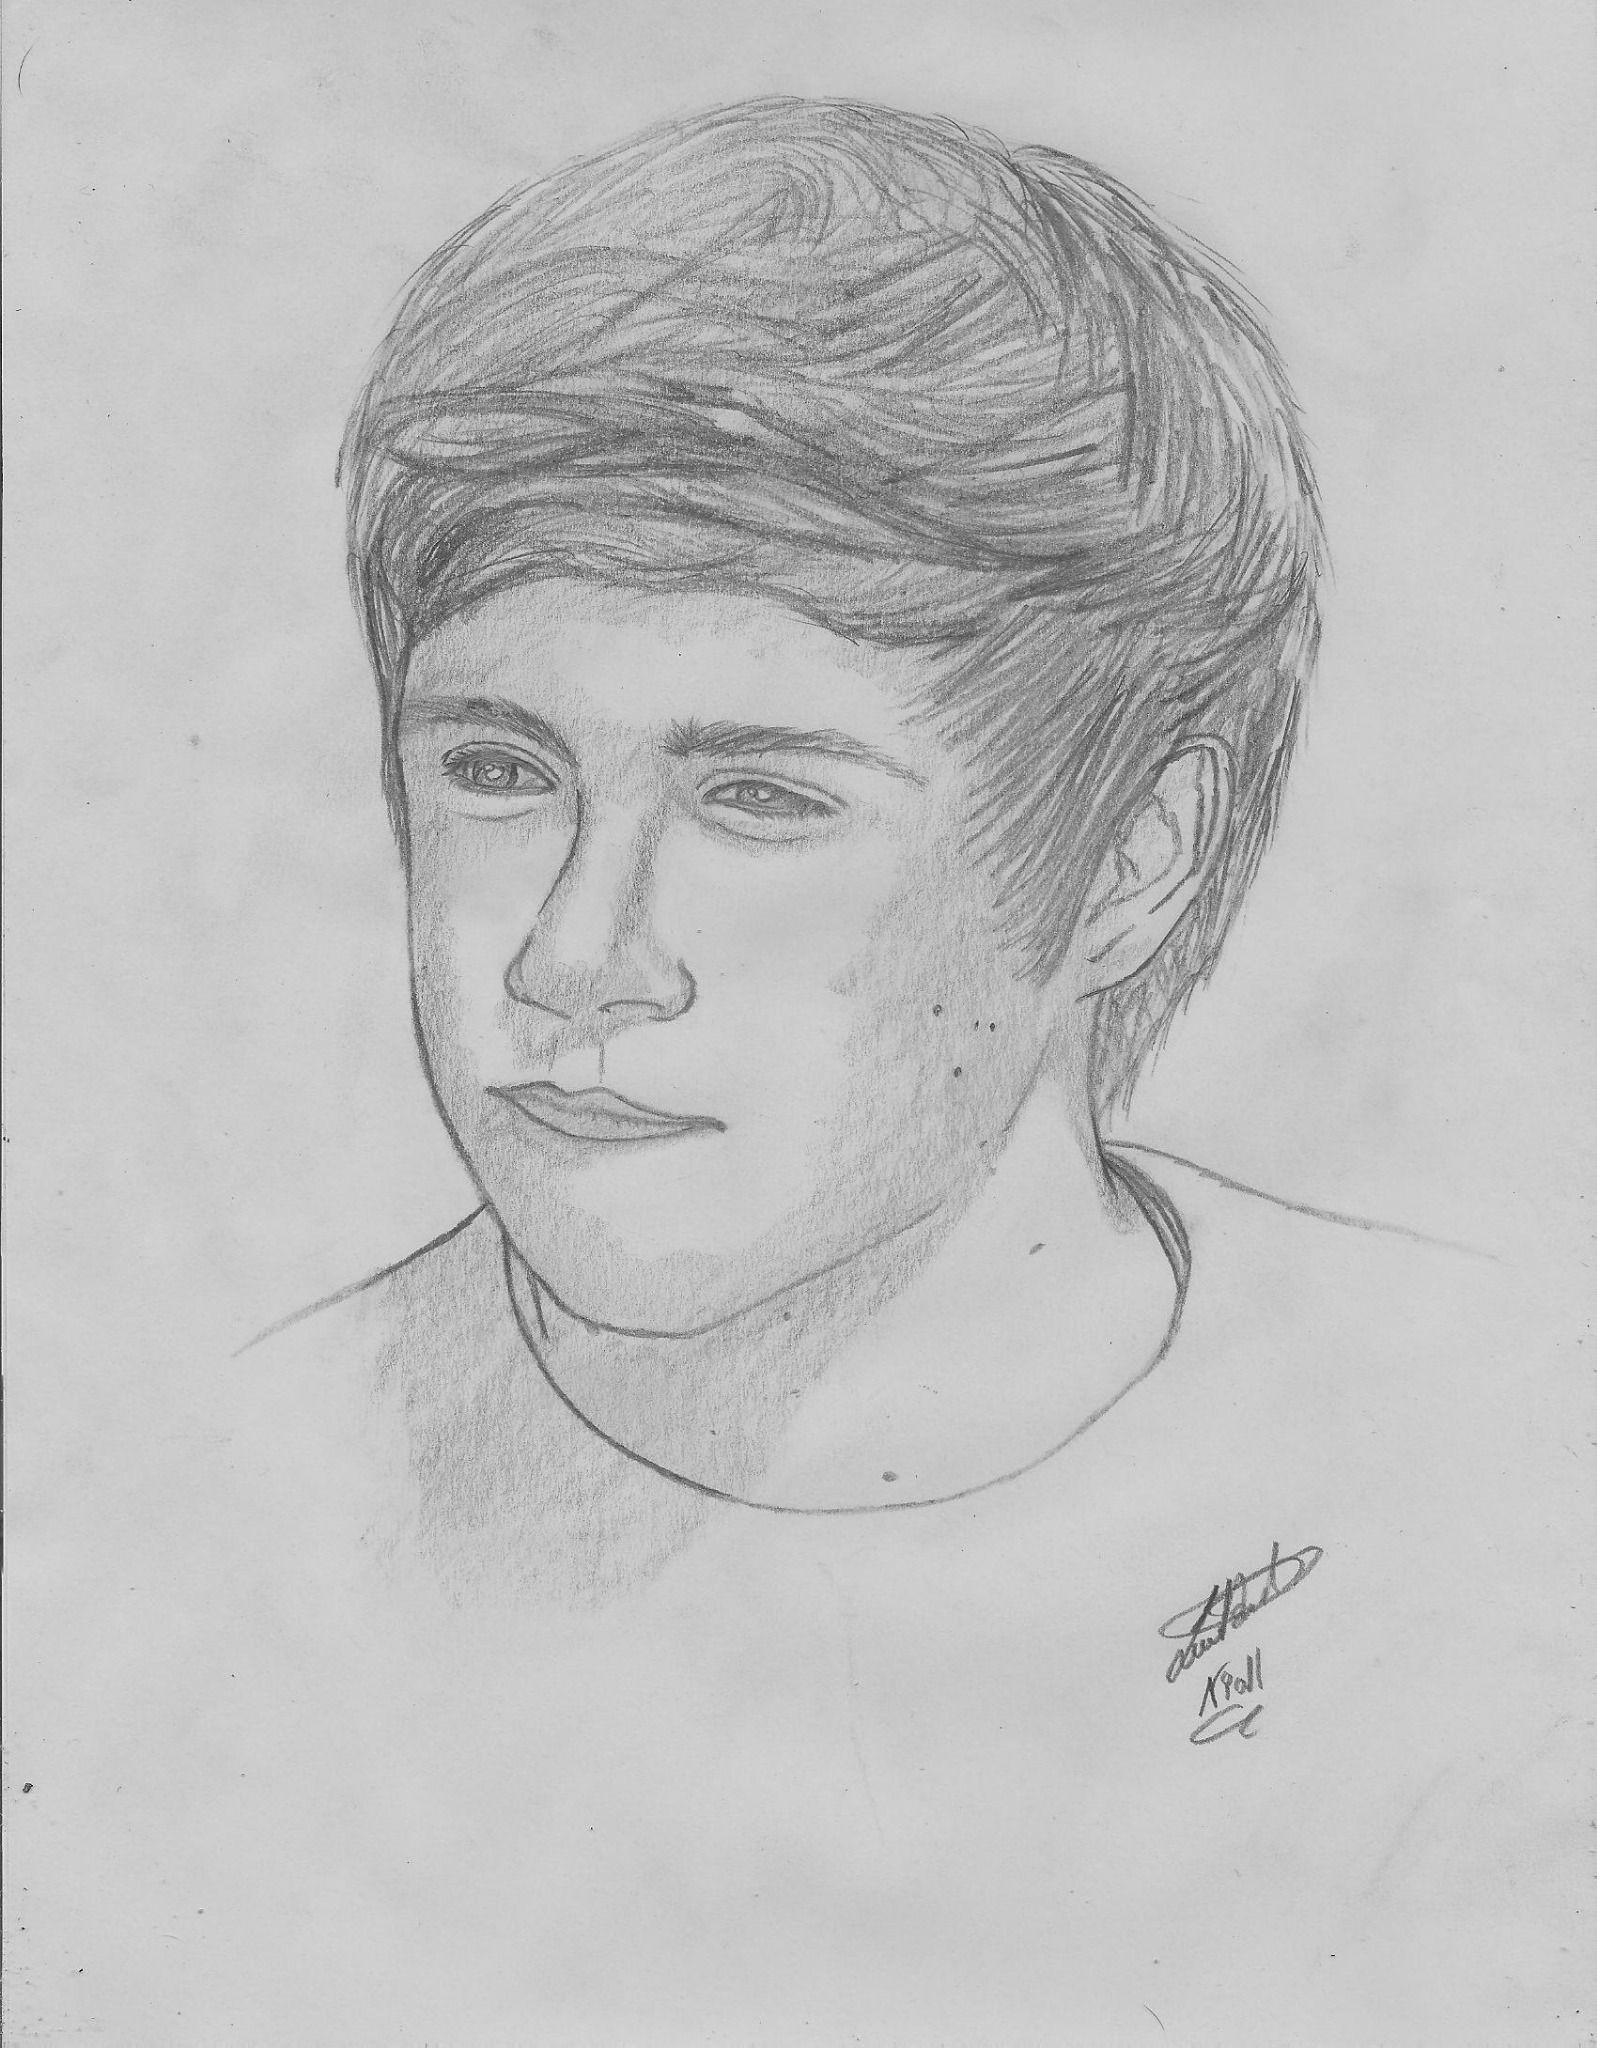 I finished the Niall drawing :) i just need Demi @MrsStealYoNiall  @NiallOfficial http://t.co/dwvCuHOS